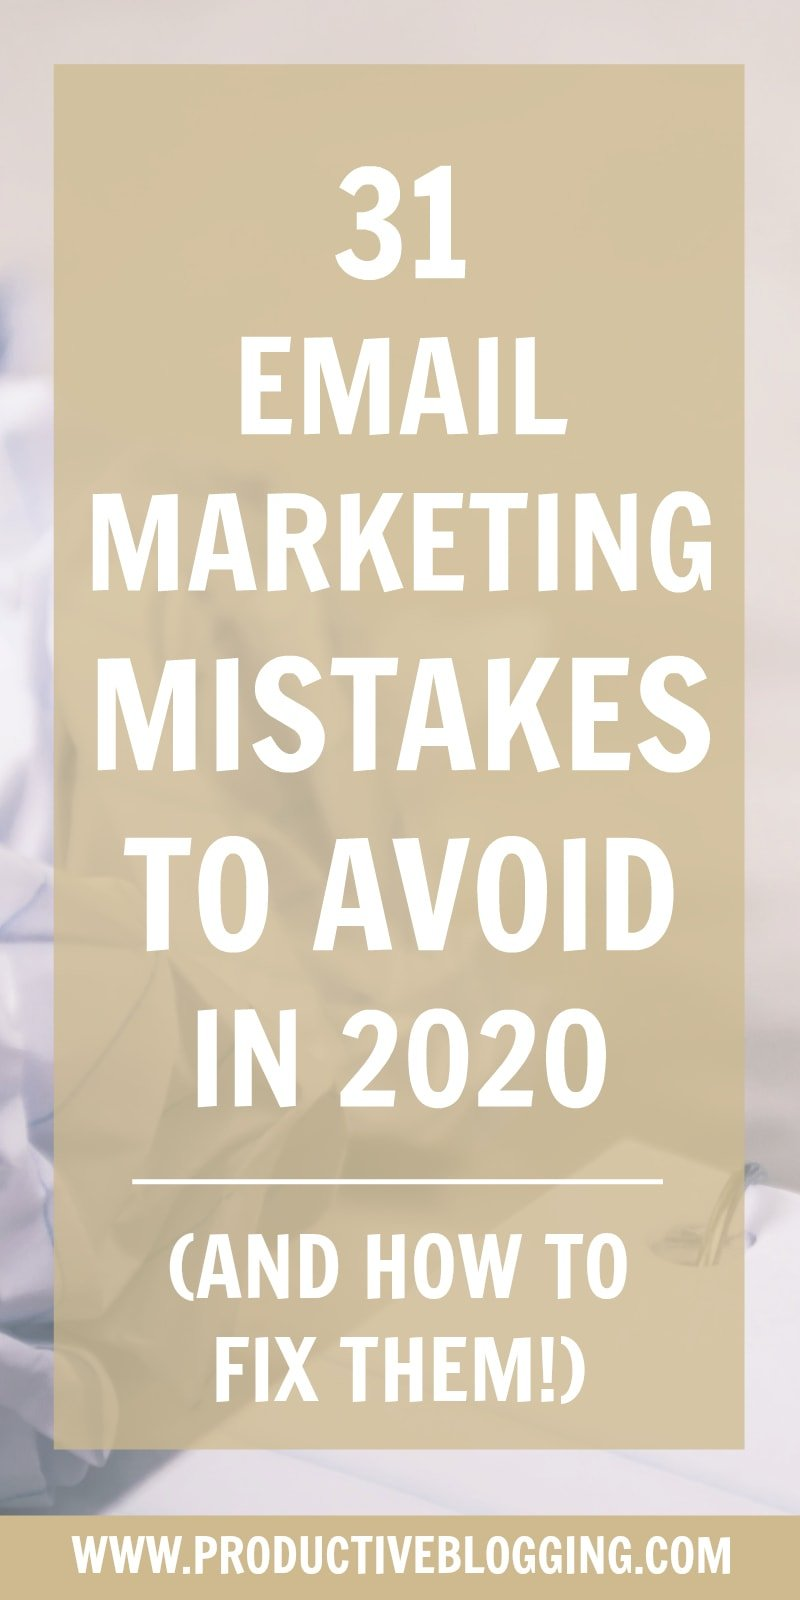 Email marketing is an essential part of blogging… but are you doing it right? Here are 31 Email Marketing Mistakes to avoid in 2020 (and how to fix them!) #emailmarketing #emailmarketingtips #emailmarketingforbloggers #emailmarketingmistakes #emailmarketing2020 #bloggingtips #blogging #bloggers #emaillist #listbuilding #subscribers #convertkit #makemoneyblogging #bloggingformoney #productivity #productivitytips #productivityhacks #productivityhabits #productiveblogging